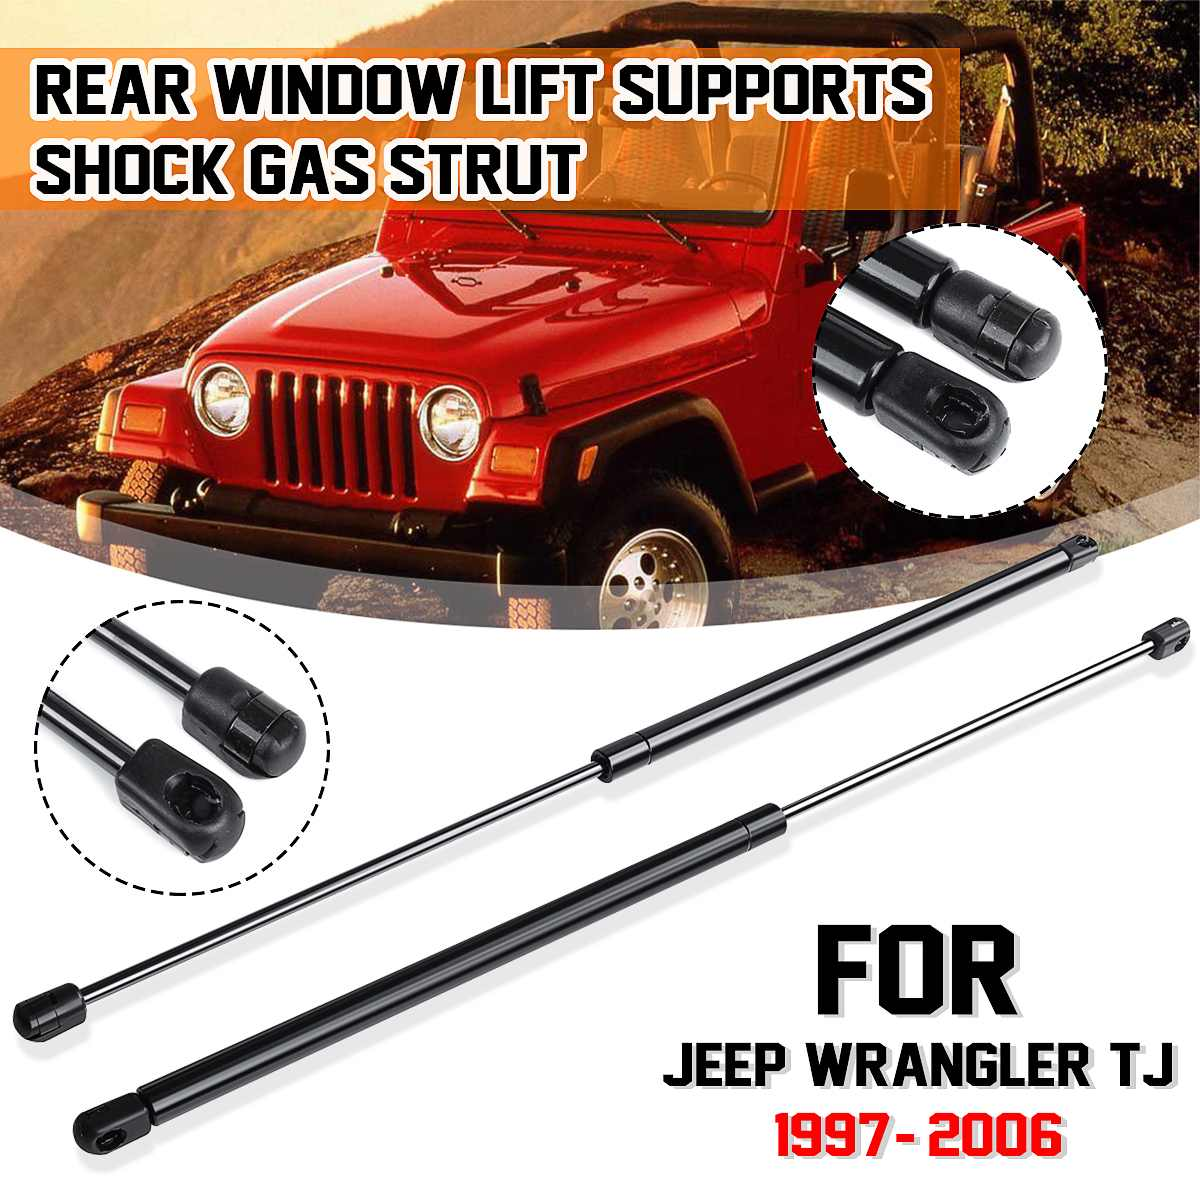 1Set Gas Charged Lift Support Strut Fits Jeep Commander Rear Window Glass